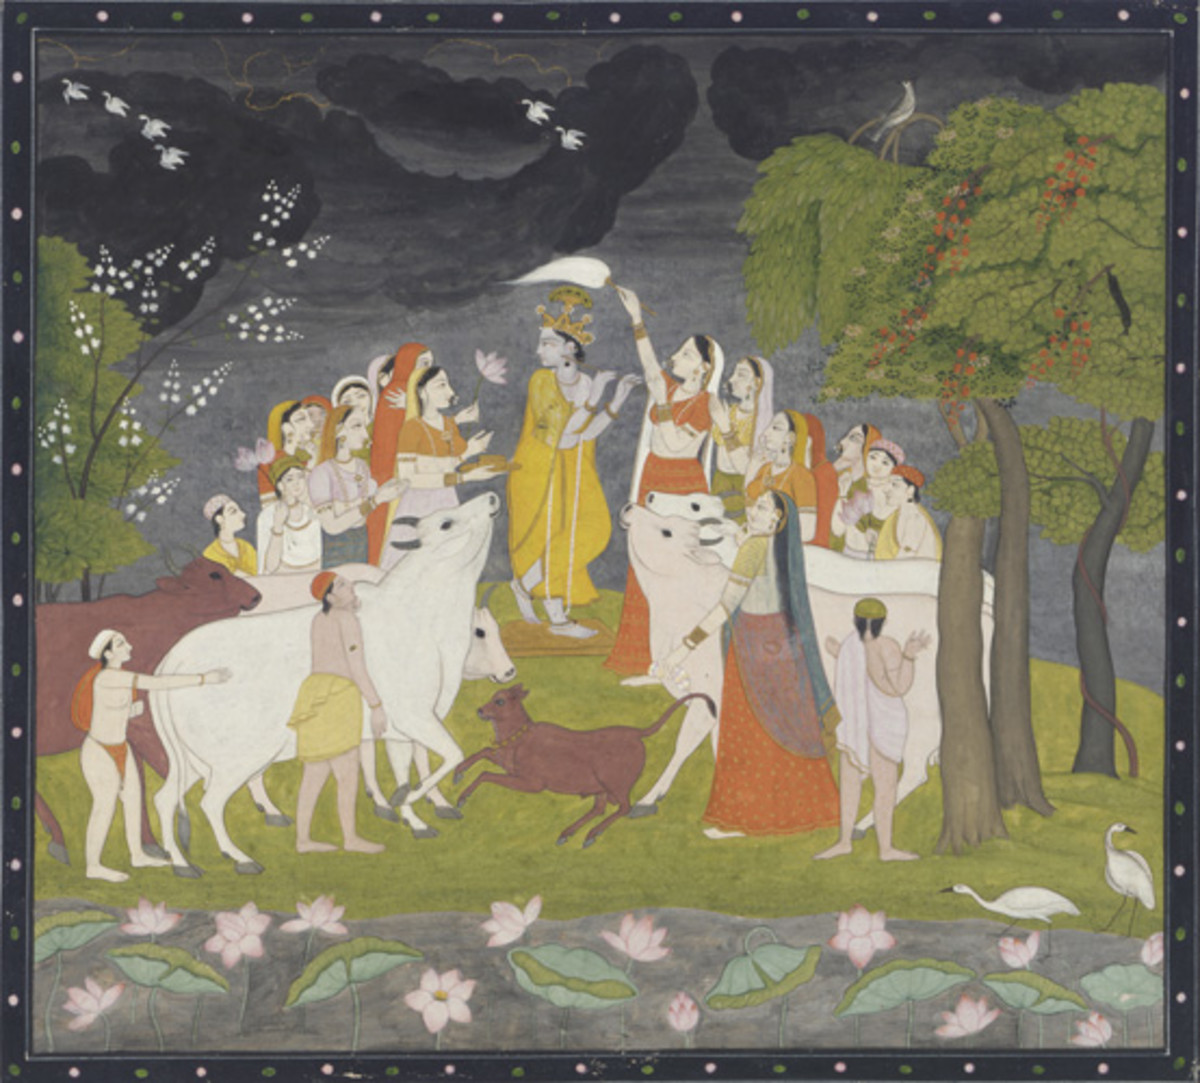 Sri Krsna playing a flut, Opaque watercolor and gold on paper, 1790-1800, Guler- Kangra region, India